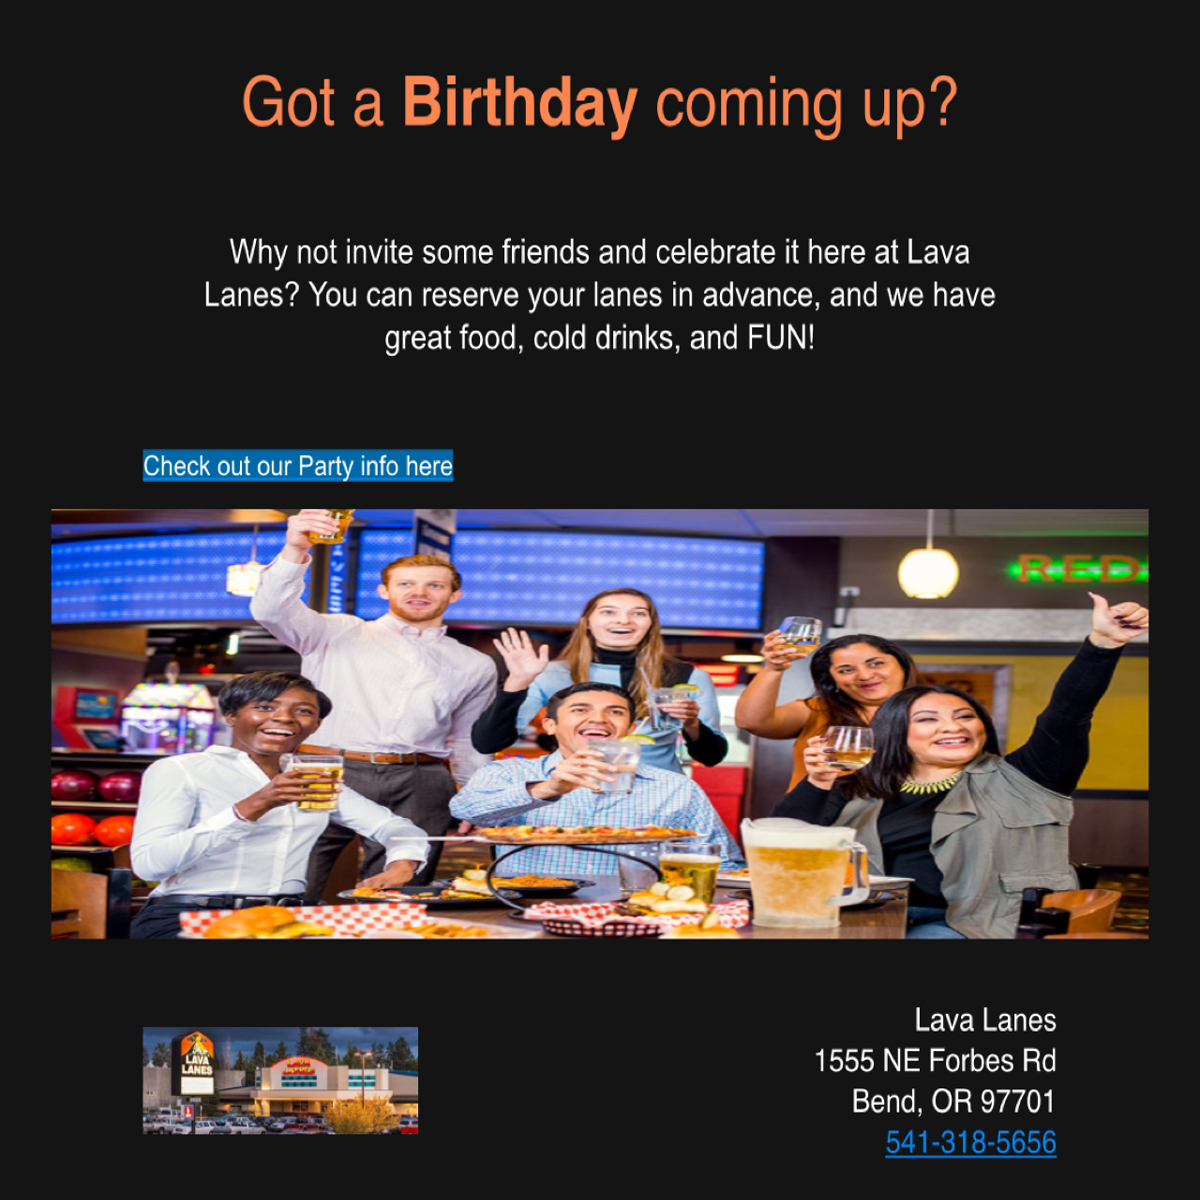 Birthday reminder email